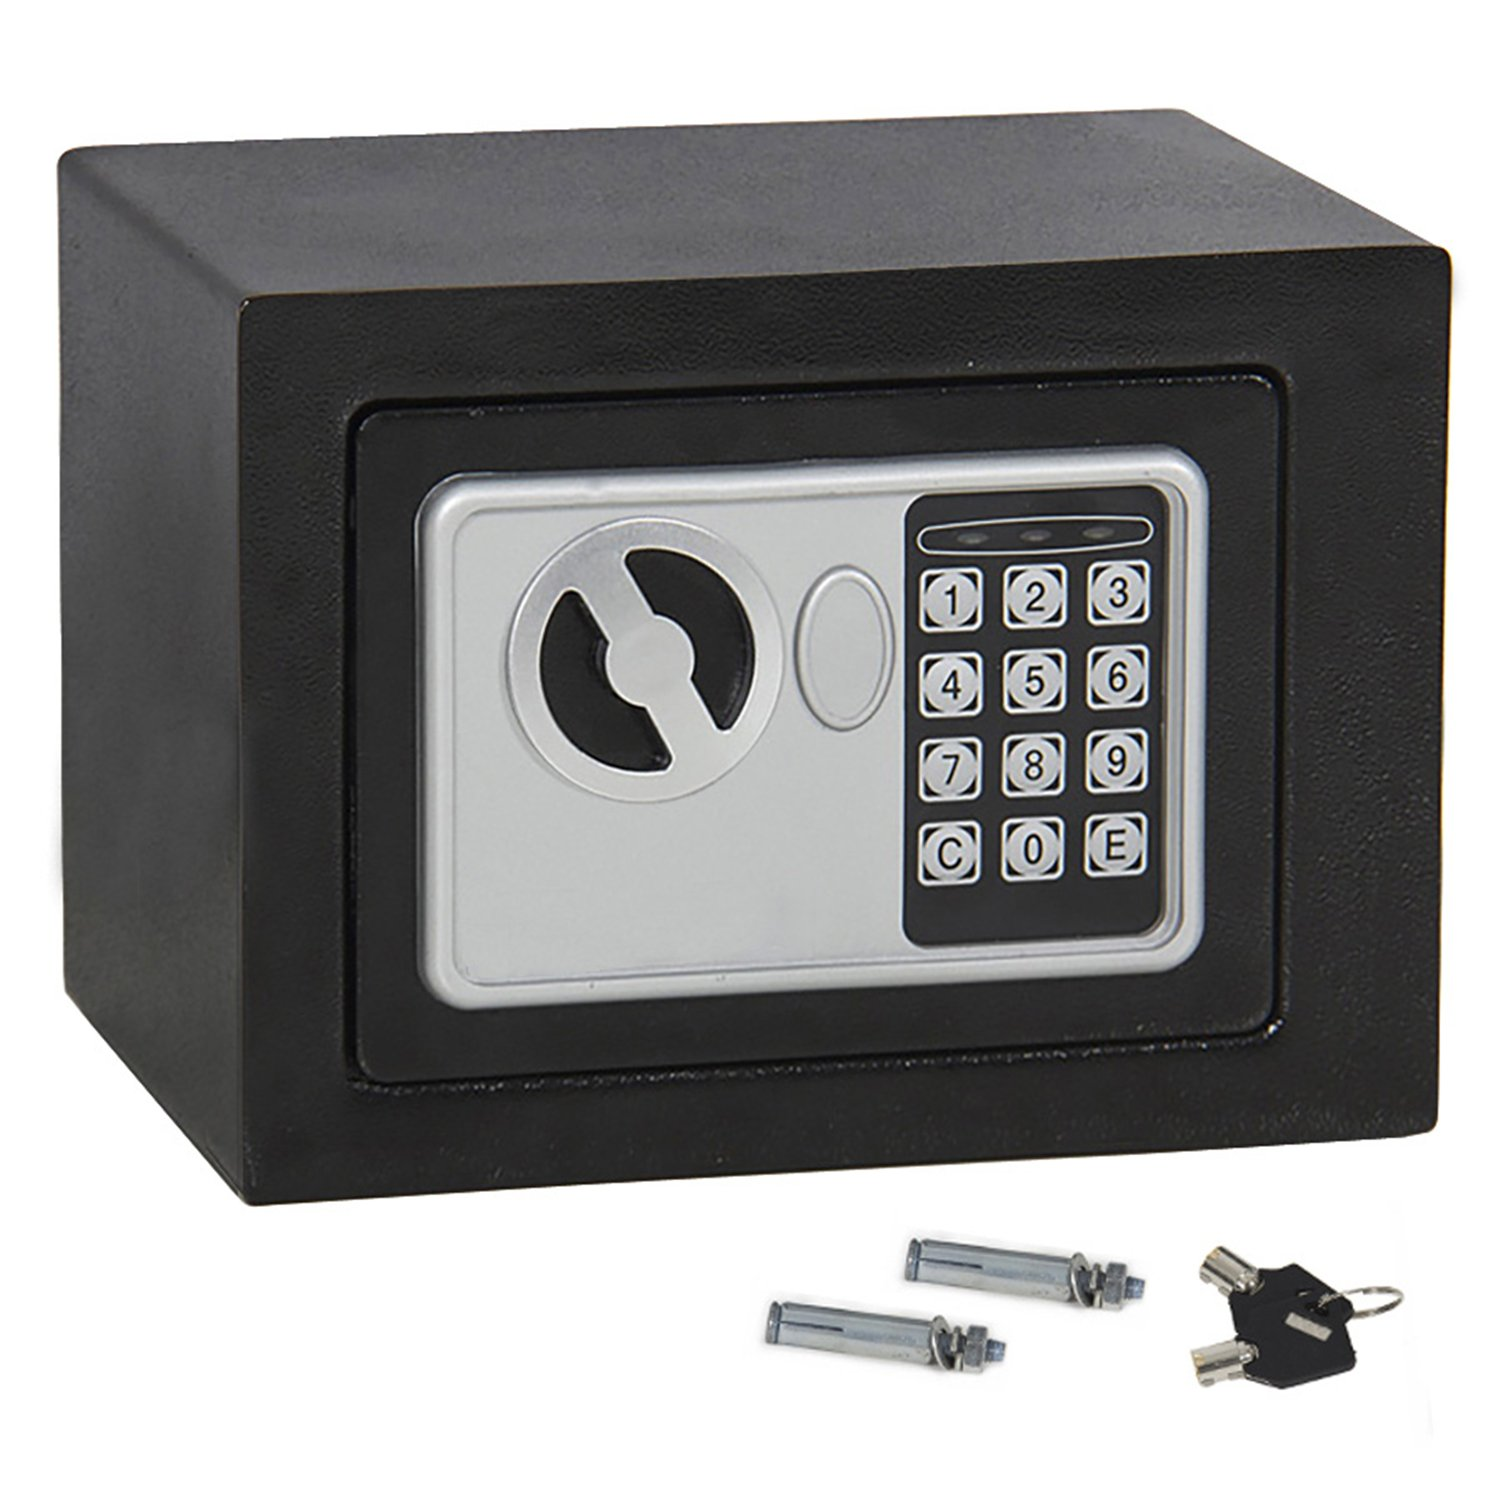 F2C Single/Double Door Digital Electronic Security Safe Box with Two Keys, Digital Lock for Gun Cash Jewelry Valuable Office Home Hotel, Solid Steel (E17)